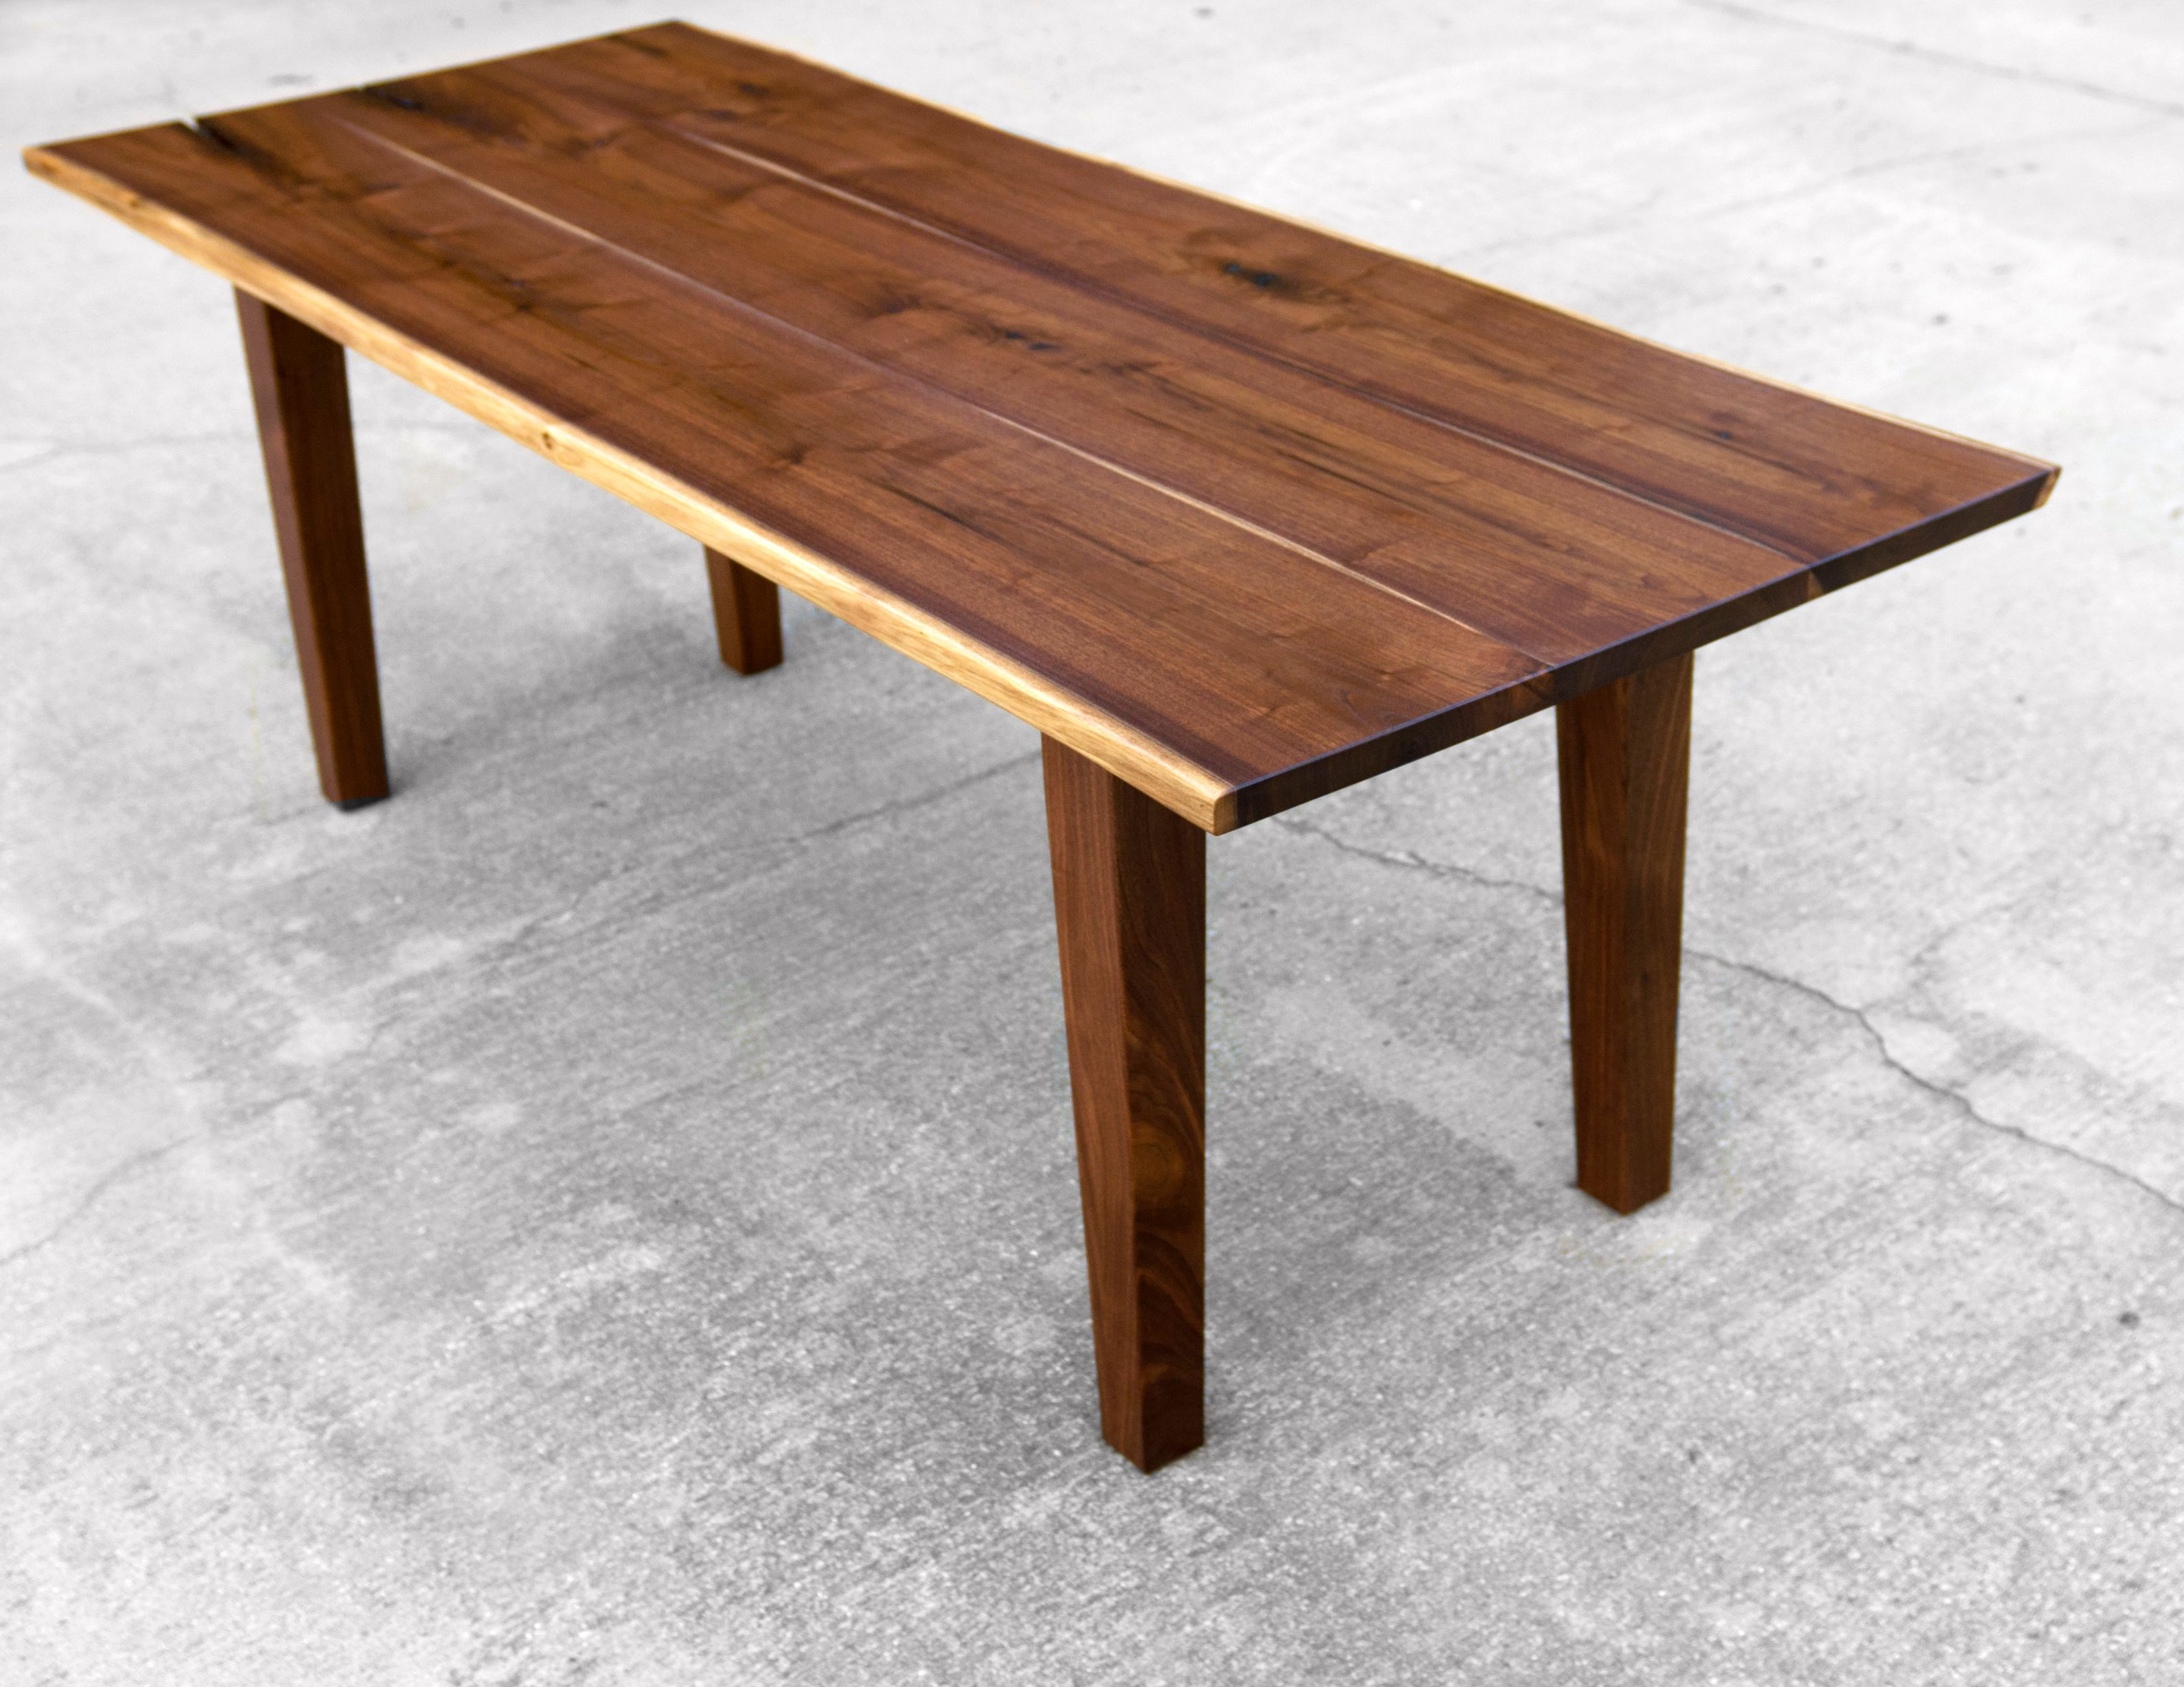 Walnut live edge dining table - Custom Made Walnut Live Edge Dining Table With Tapered Legs